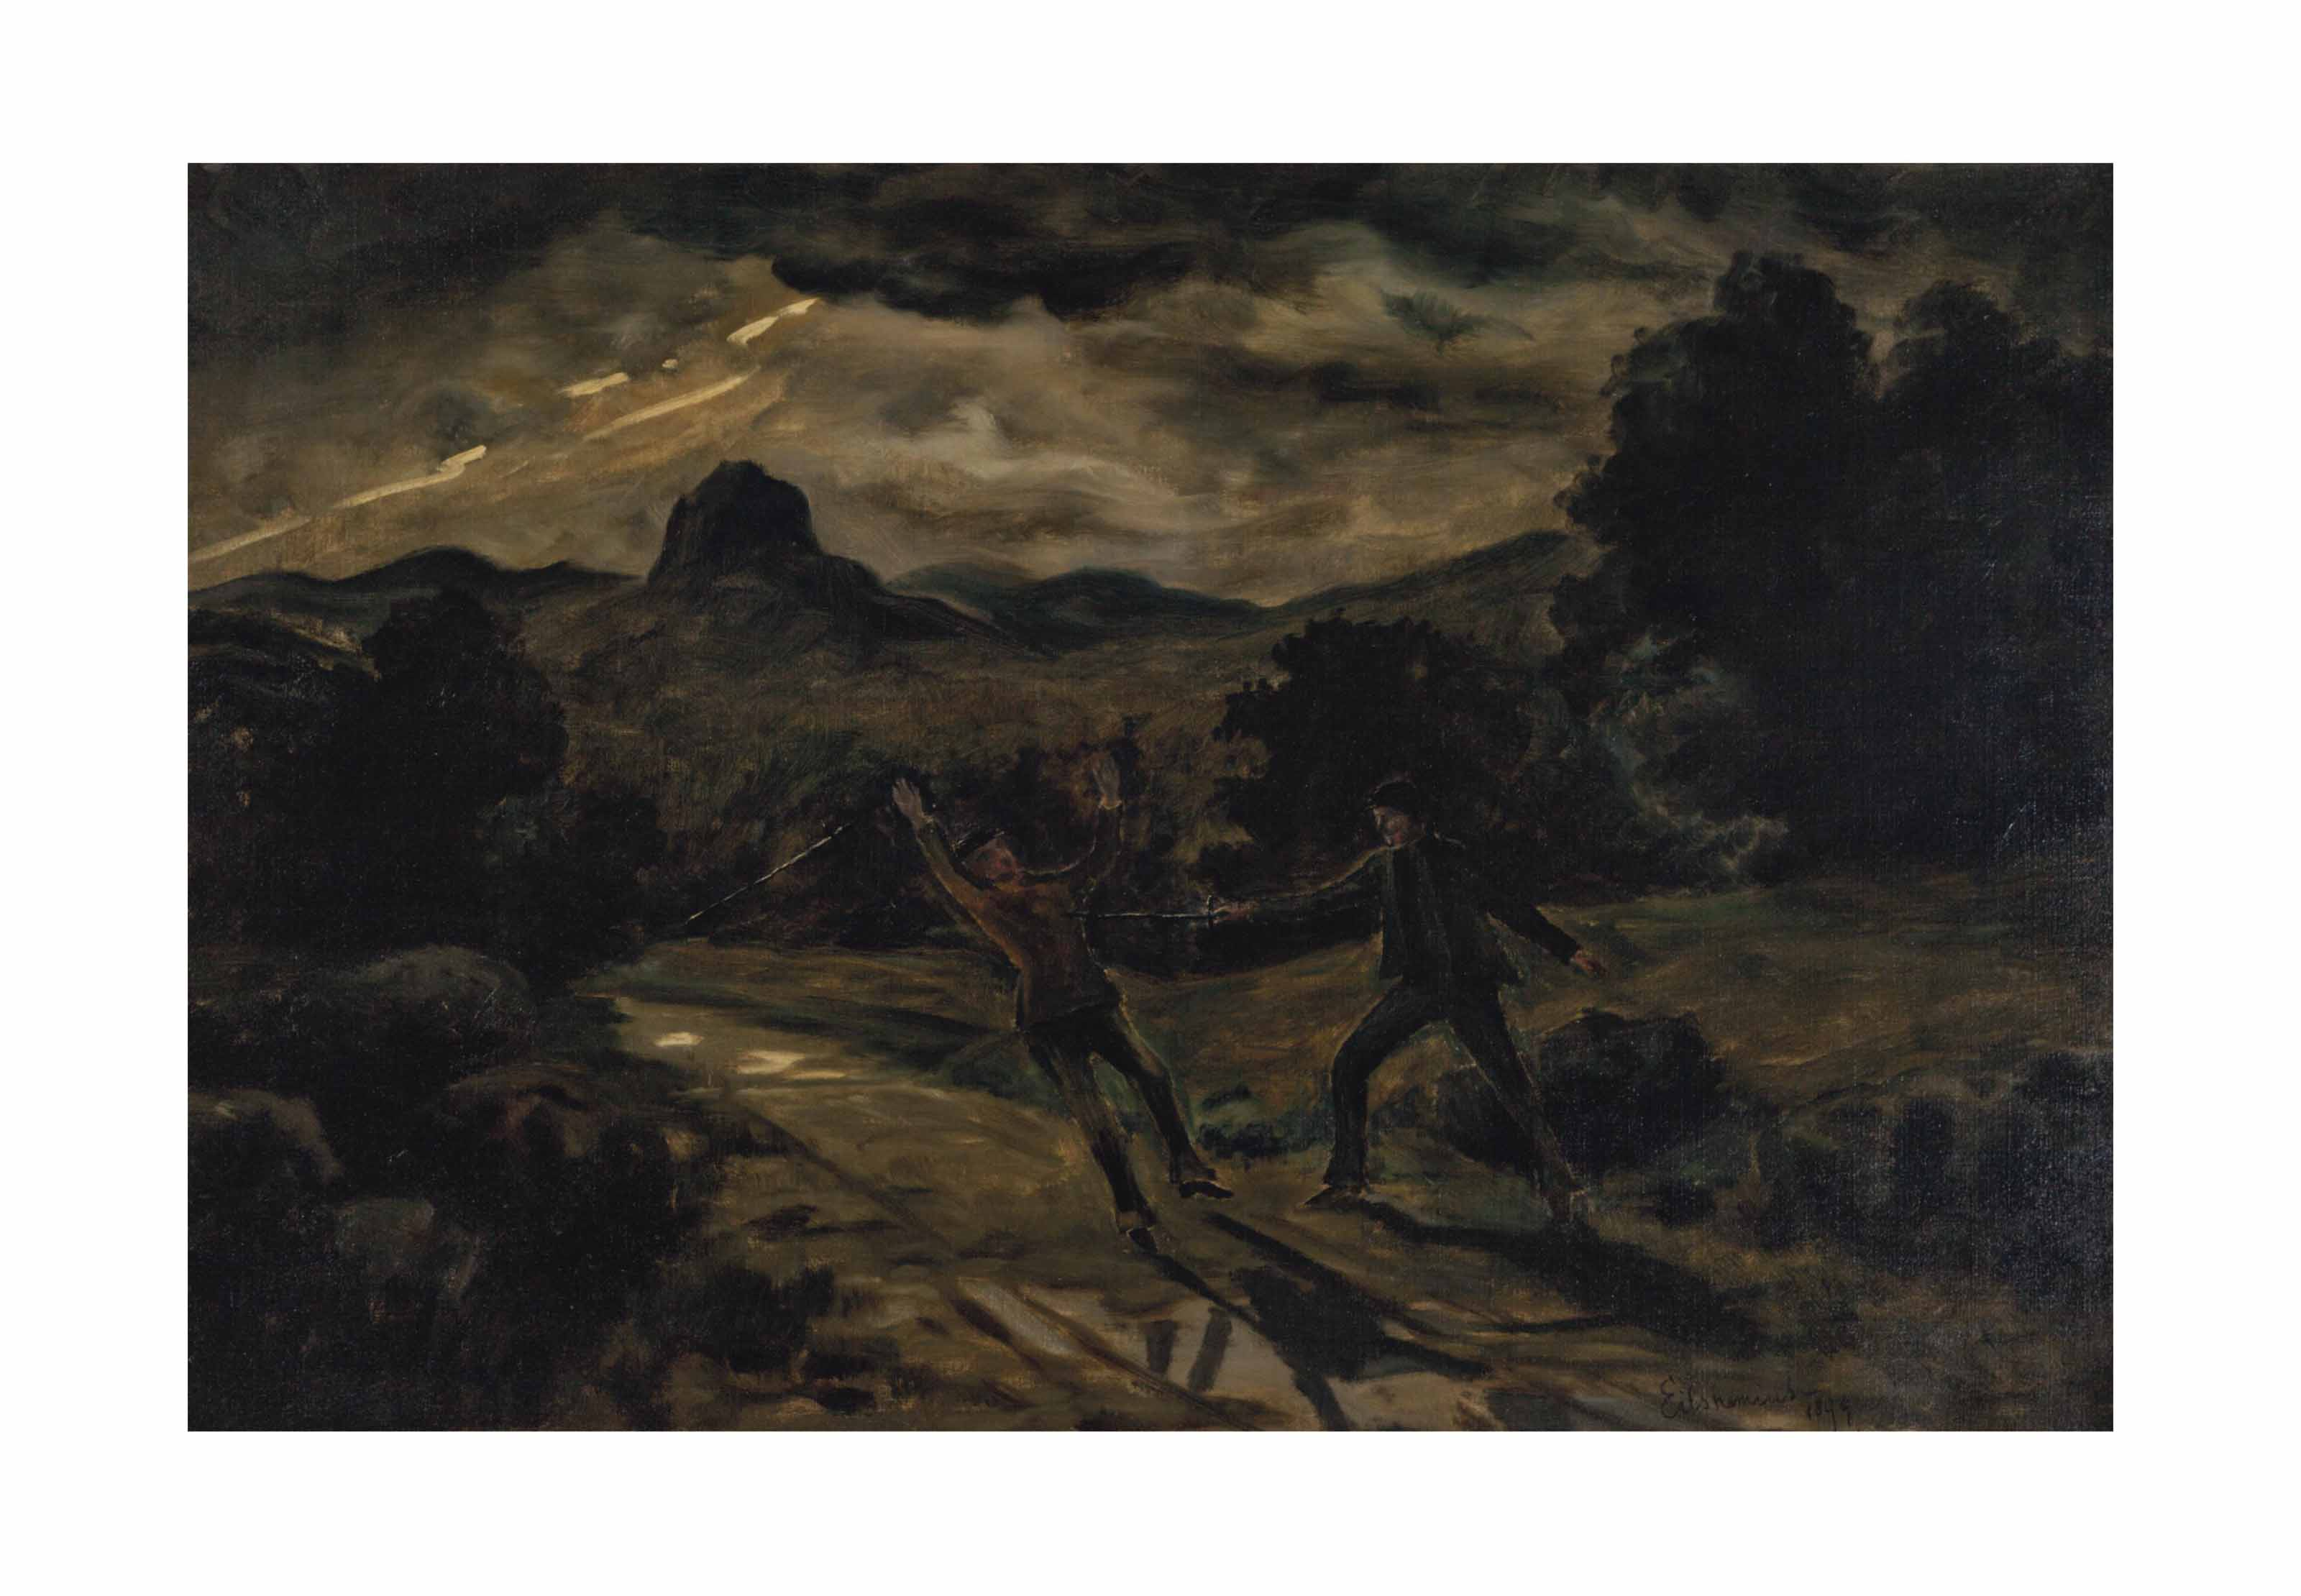 Untitled (The Duel)